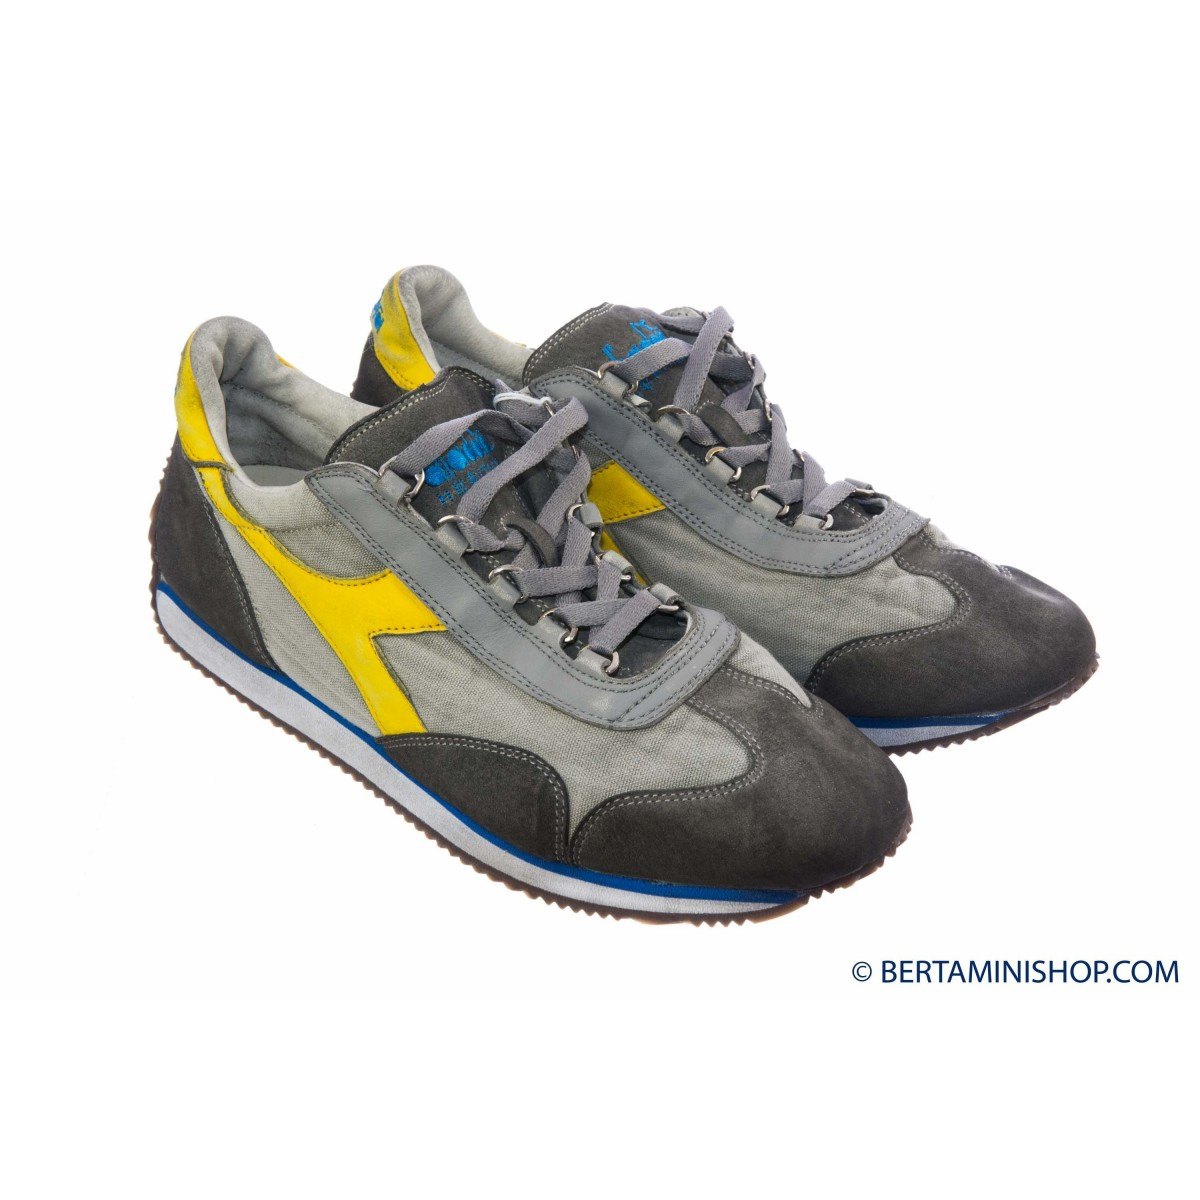 Scarpa Diadora Manner - Equipe Sw Dirty 201.155765